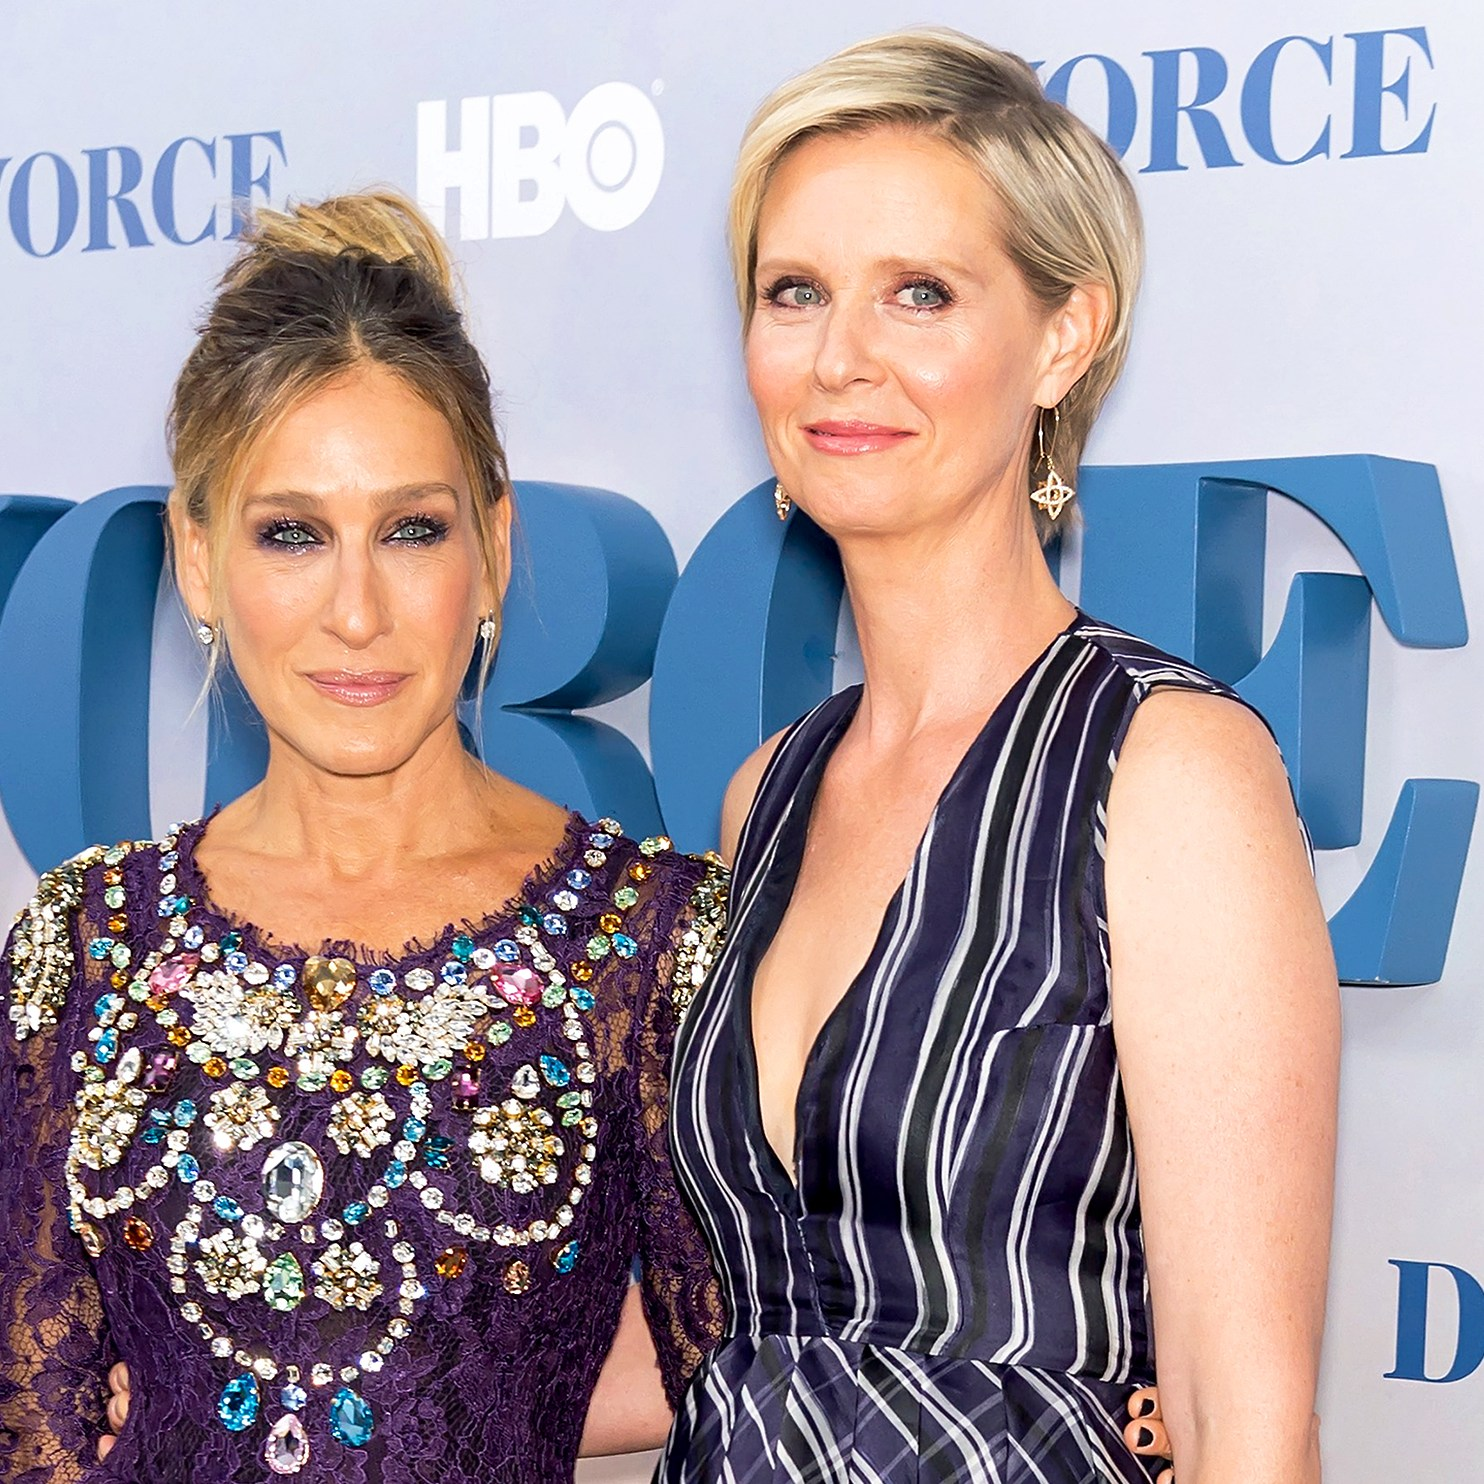 Sarah Jessica Parker and Cynthia Nixon attend the 'Divorce' New York Premiere at SVA Theater on October 4, 2016 in New York City.